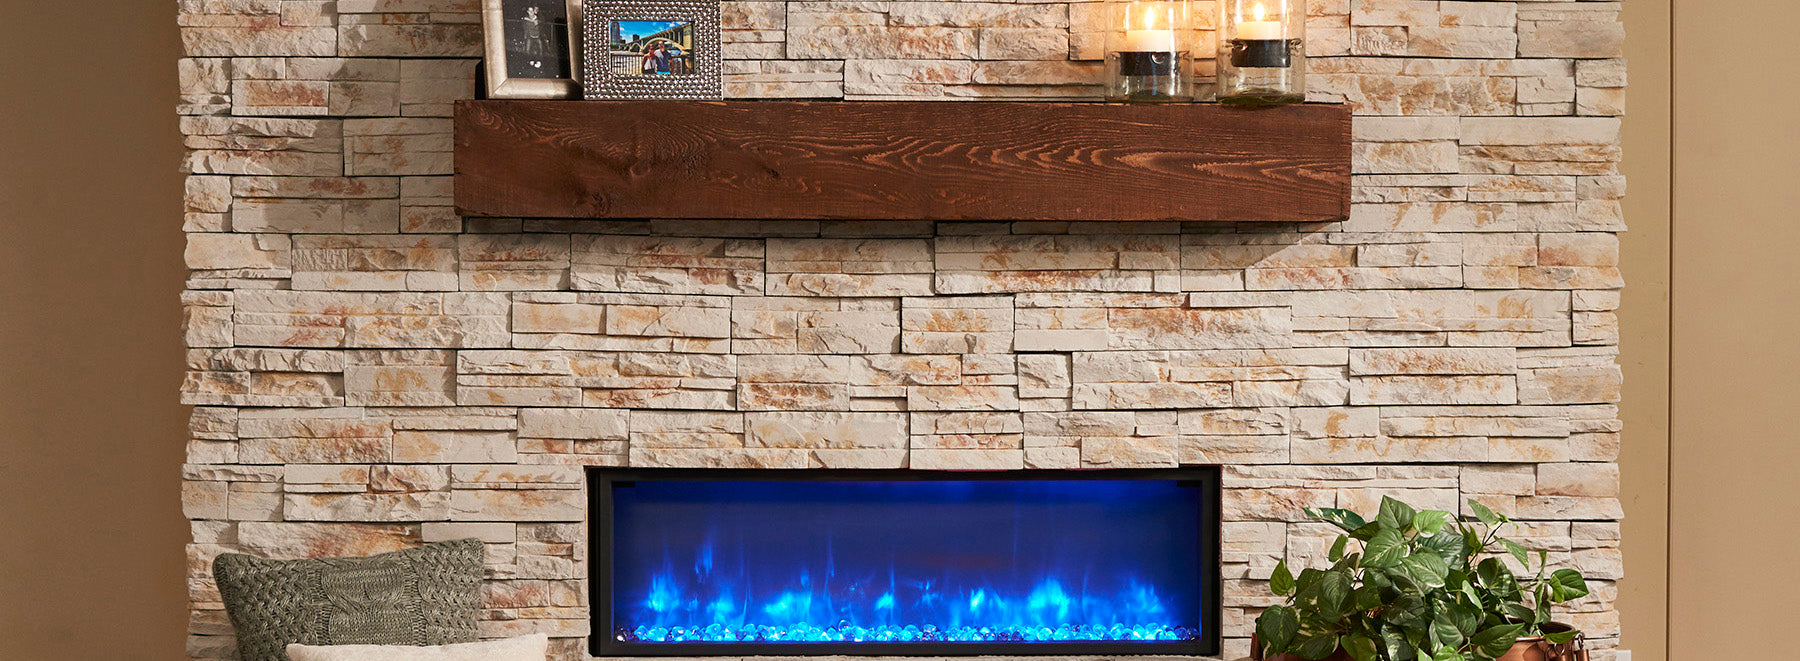 Outdoor GreatRoom Gallery Linear Supercast Wood Mantel Gallery Linear Built-In Electric Fireplace GBL-44